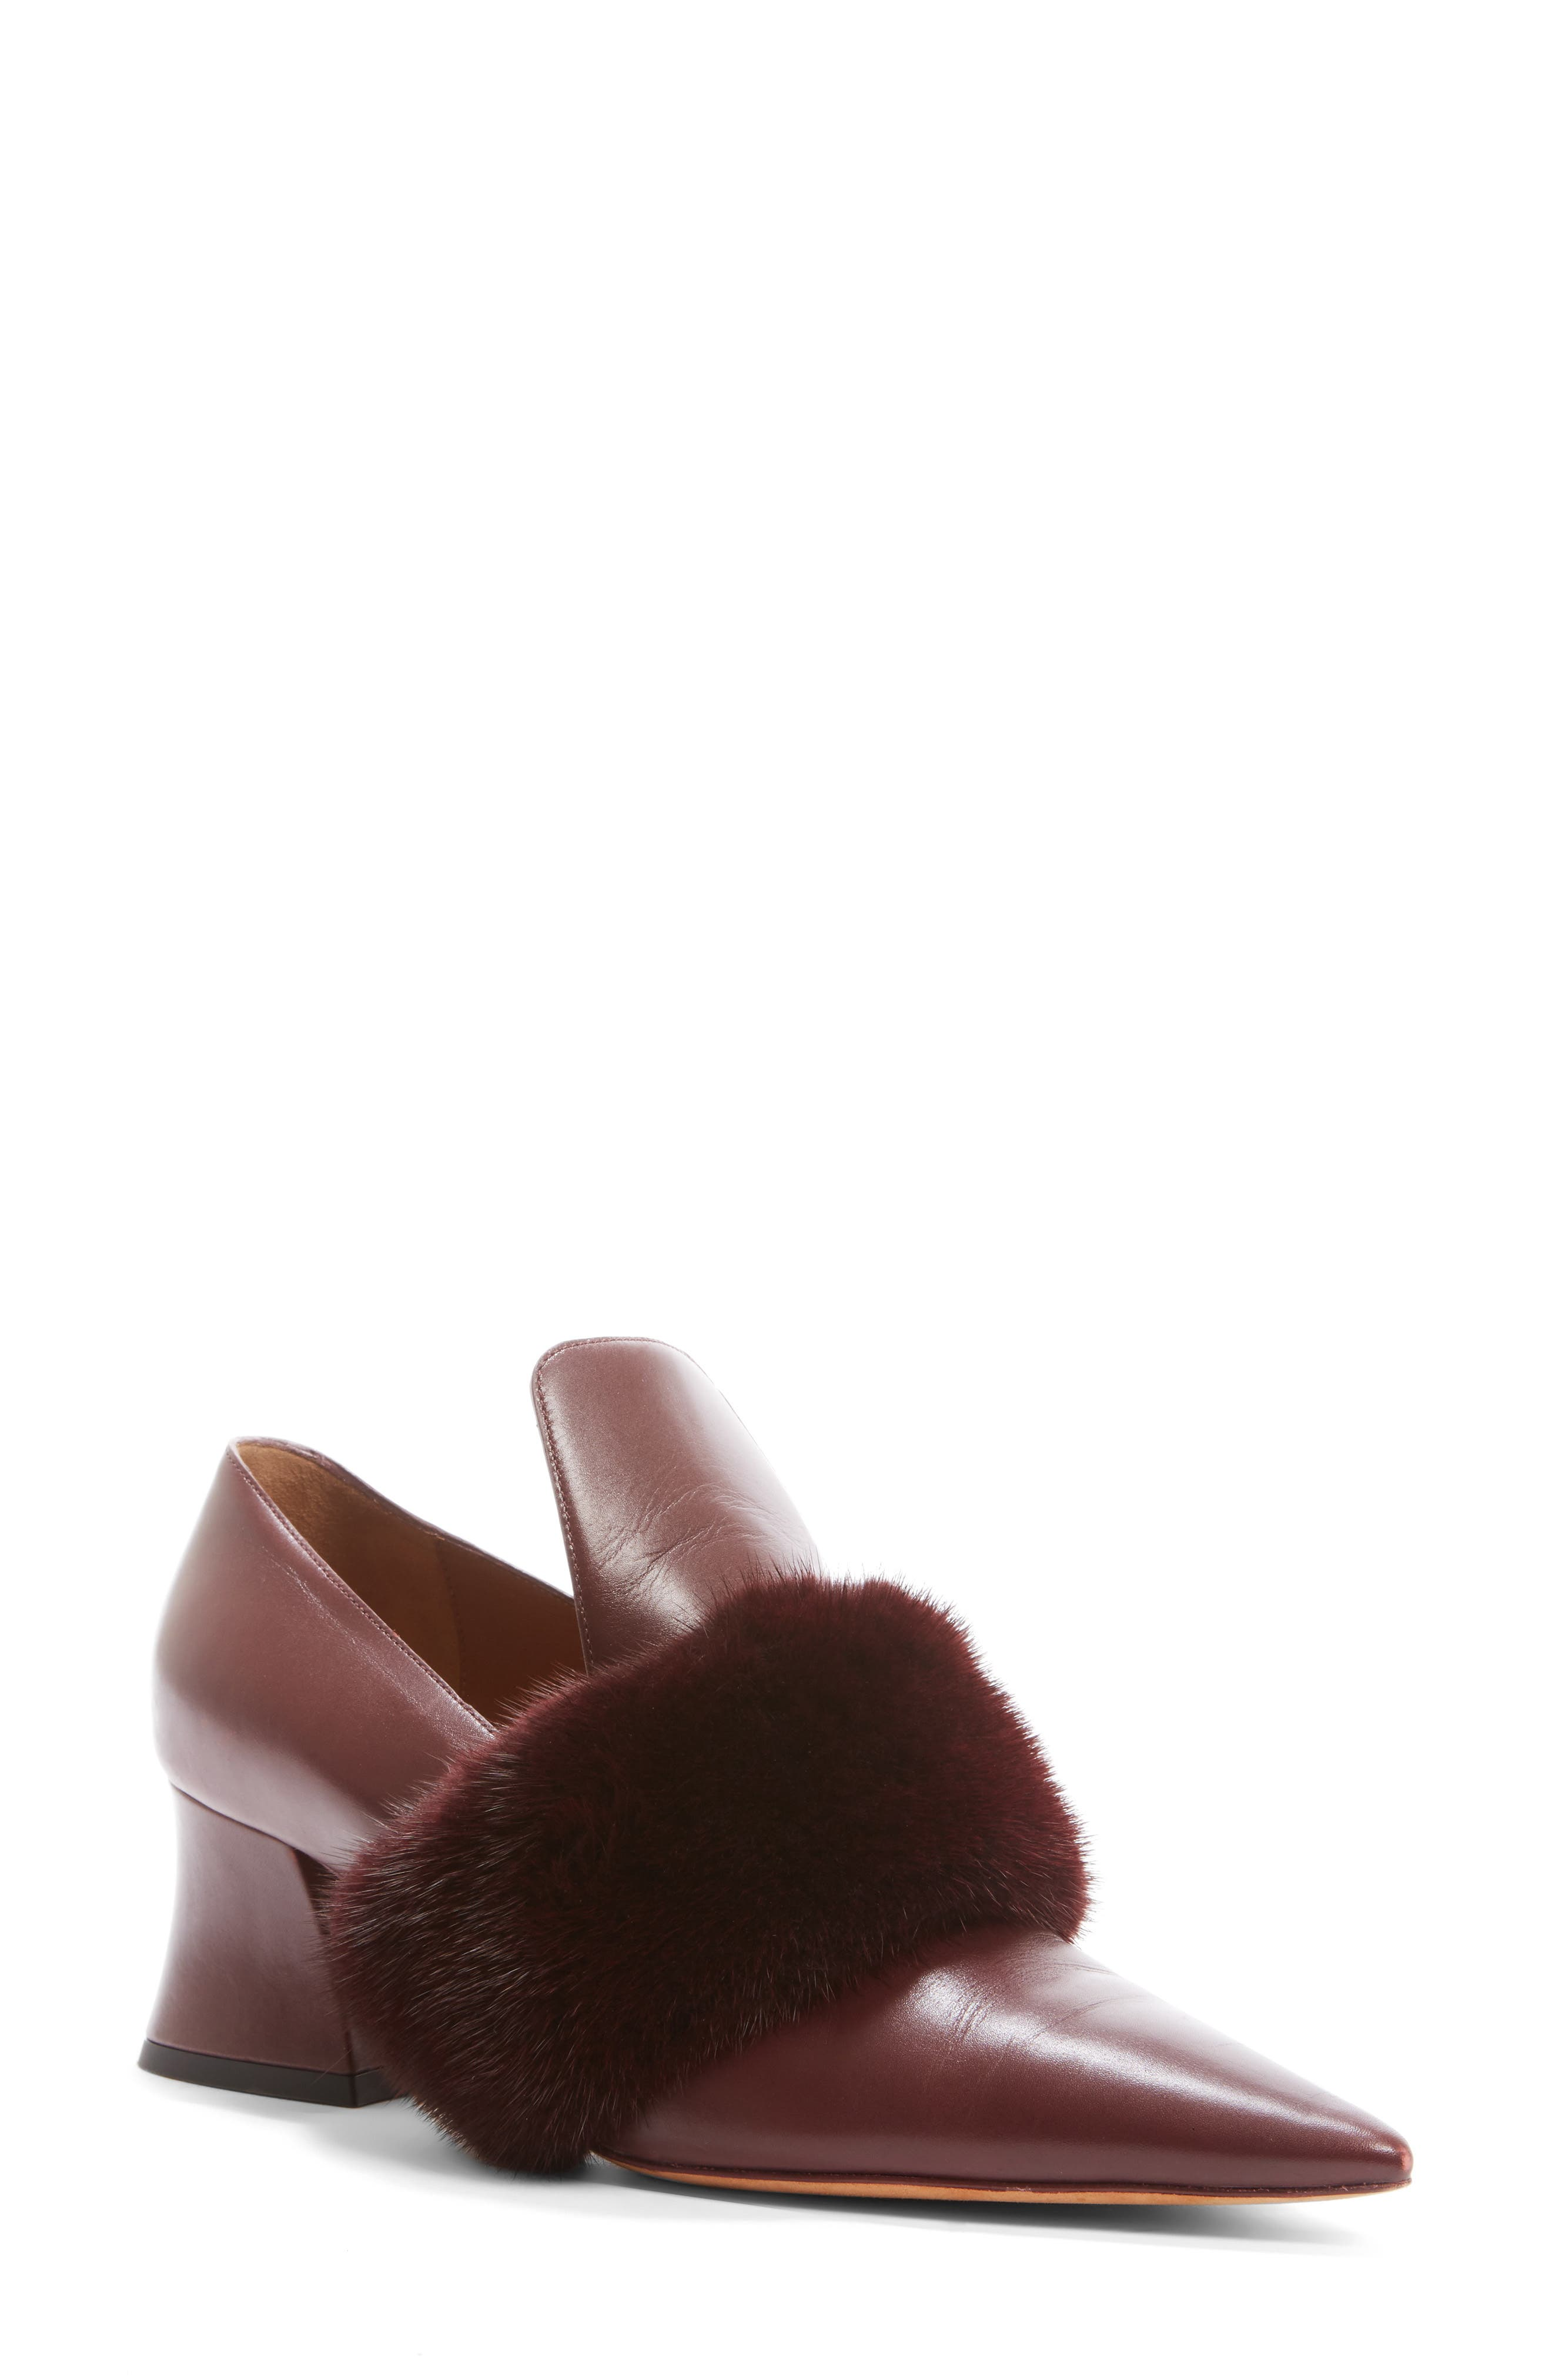 Main Image - Givenchy Patricia Pump with Genuine Mink Fur Trim (Women)